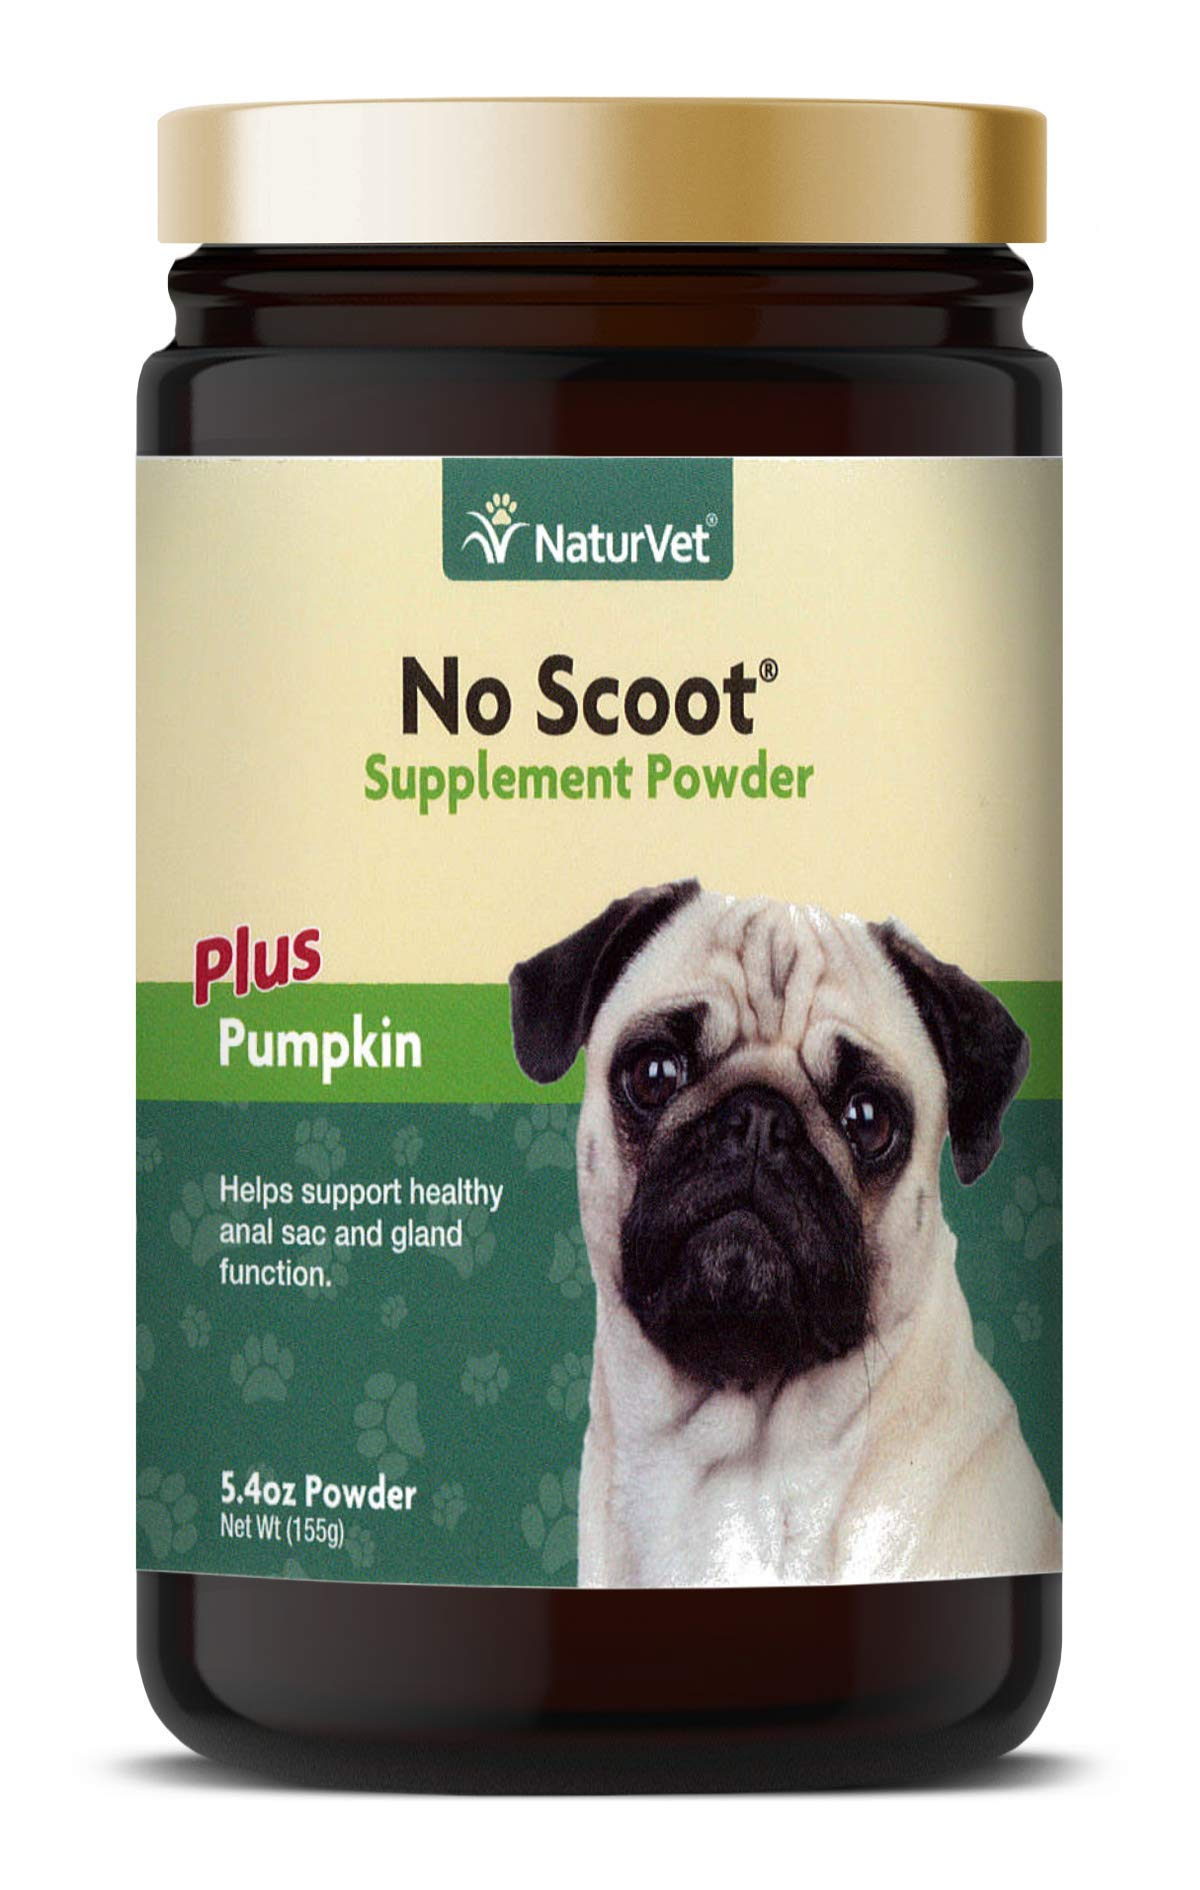 NaturVet - No Scoot for Dogs - Plus Pumpkin - Supports Healthy Anal Gland & Bowel Function - Enhanced with Beet Pulp, Flaxseed & Psyllium Husk - 5.4 oz Powder by NaturVet